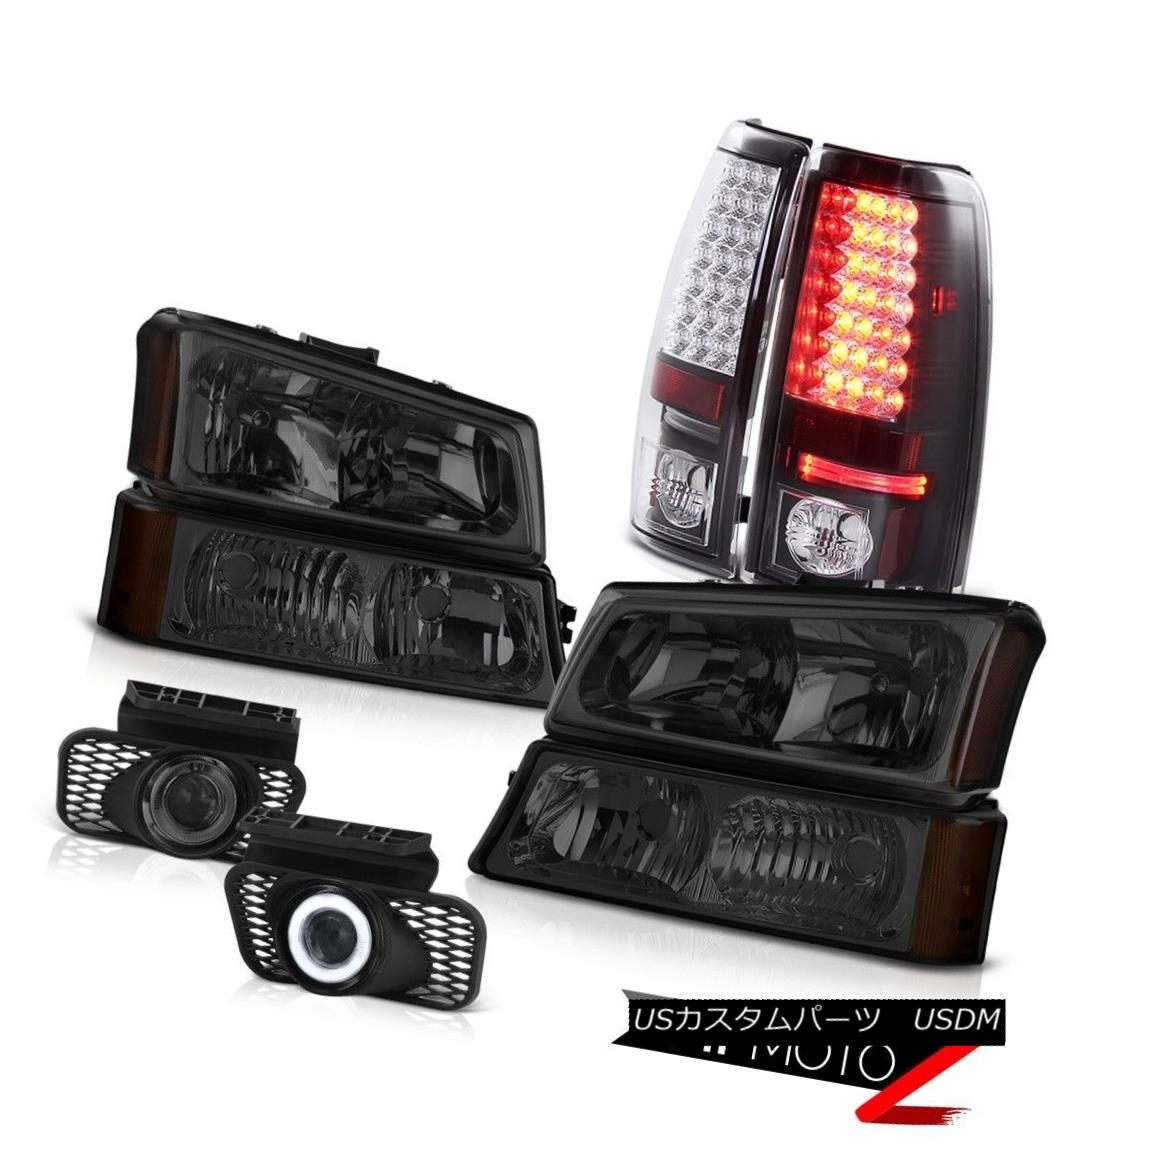 テールライト Smoke Headlights LEFT RIGHT Black LED Taillights Foglight 03-06 Chevy Silverado スモークヘッドライトLEFT RIGHTブラックテールライトフォグライト03-06 Chevy Silverado